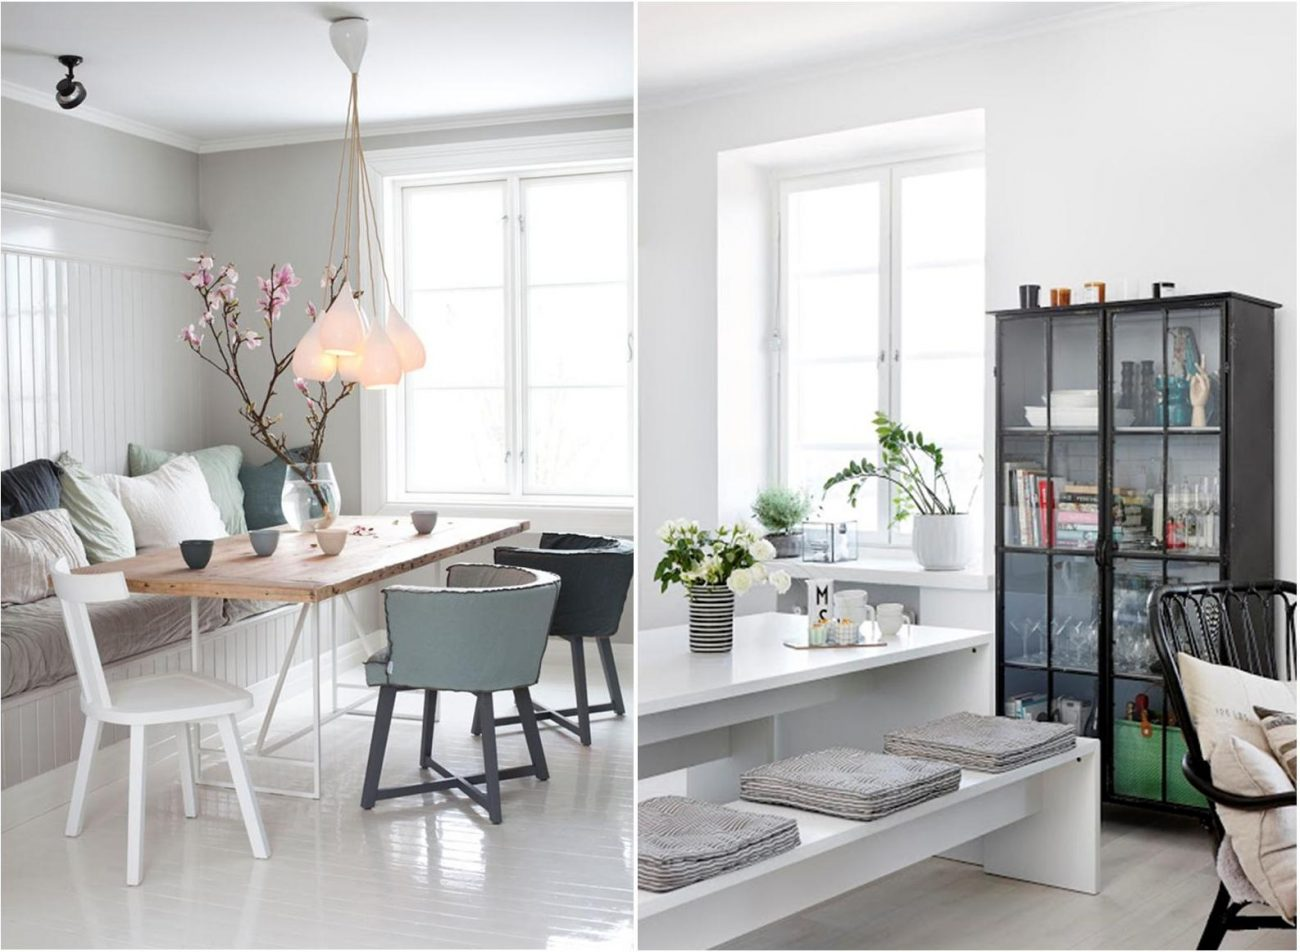 5 Home Décor Styles To Consider When Redesigning Your